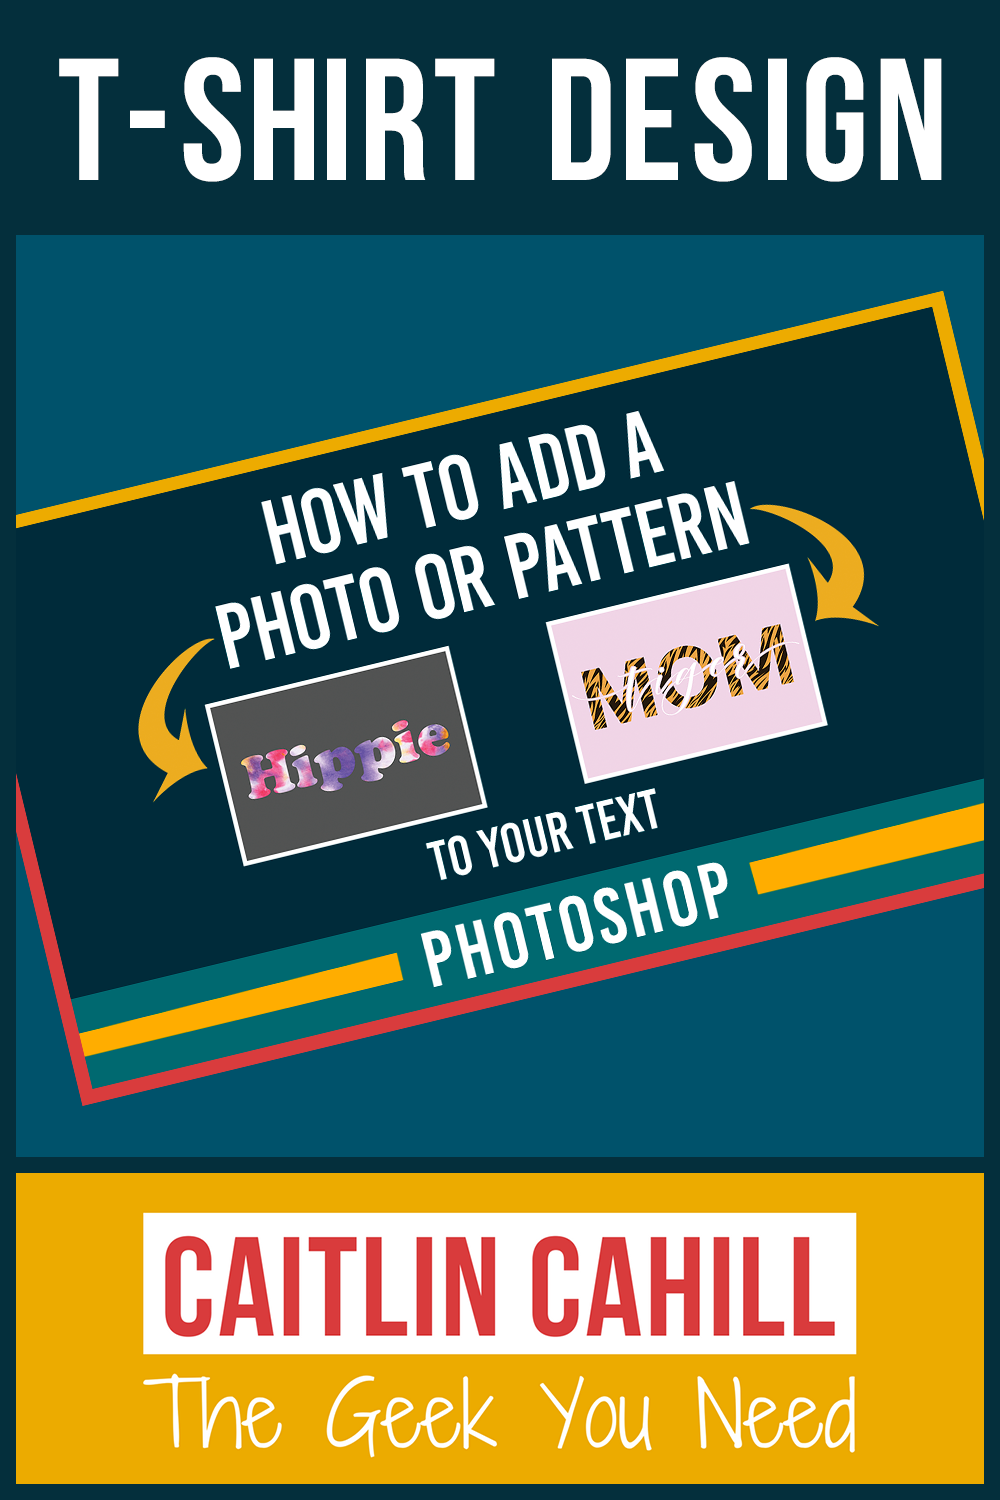 How to add a photo or pattern to your text using Photoshop.